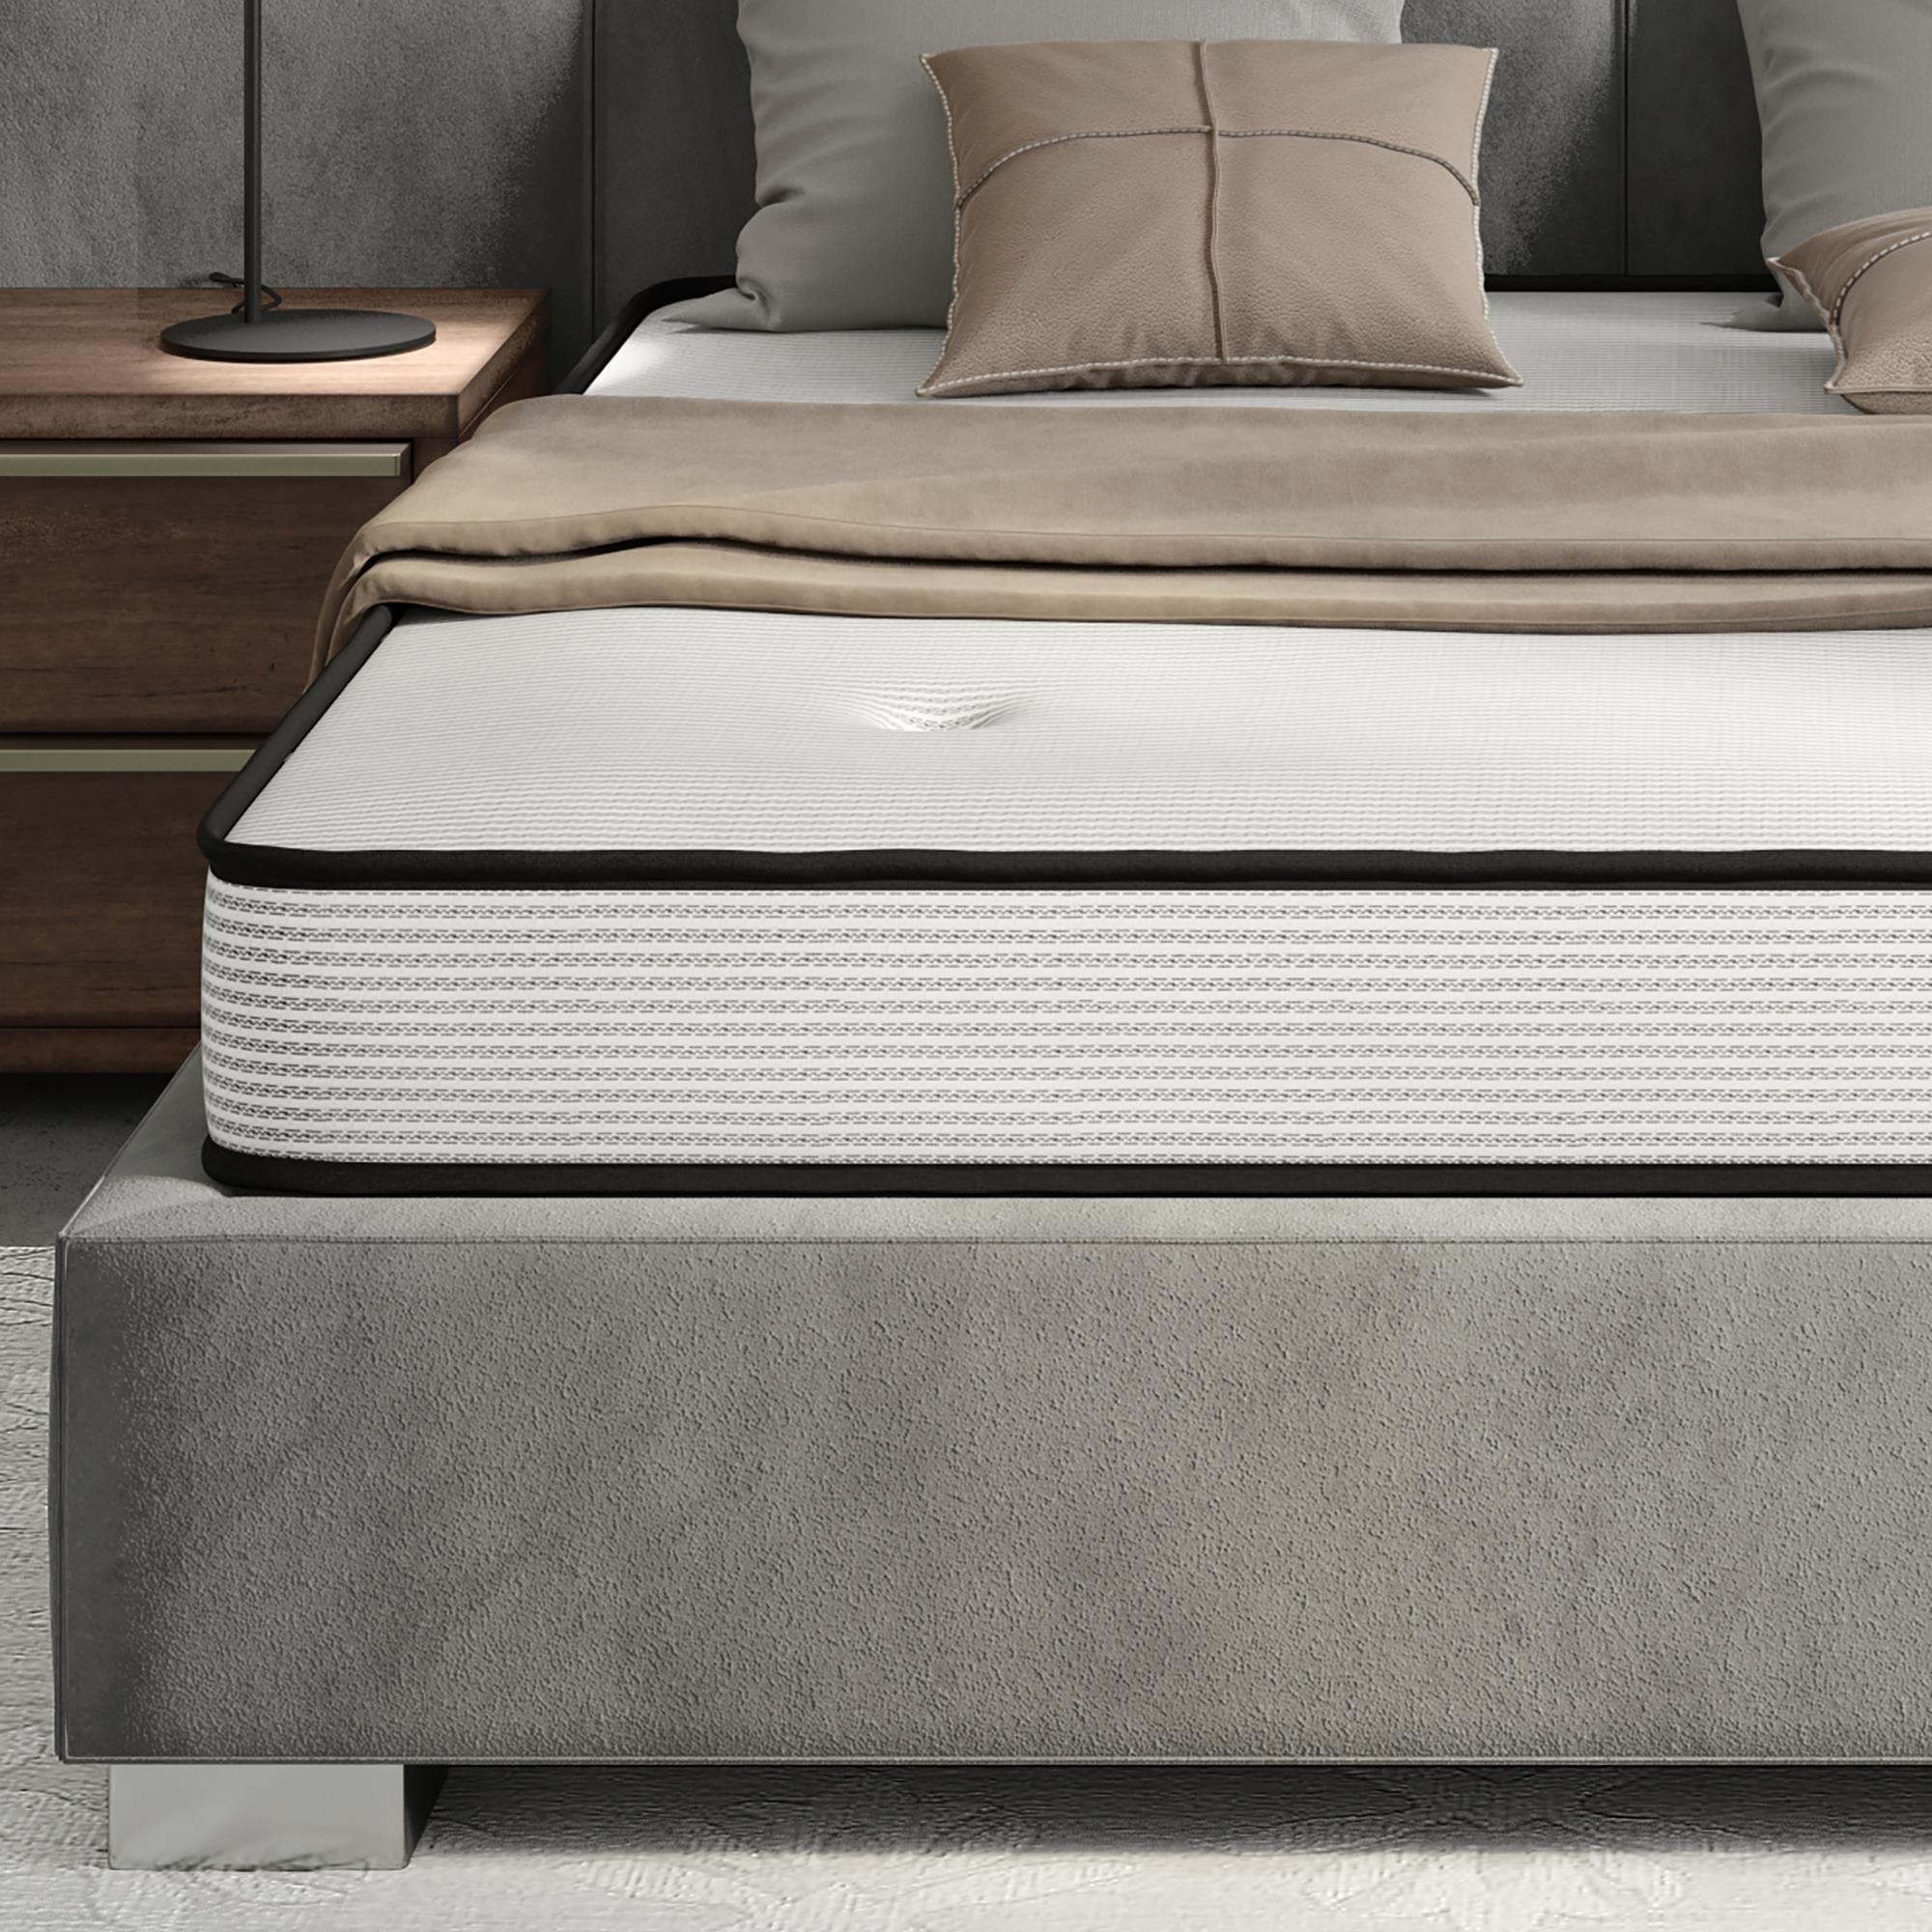 "Signature Sleep Freedom 6"" Memory Foam Mattress"